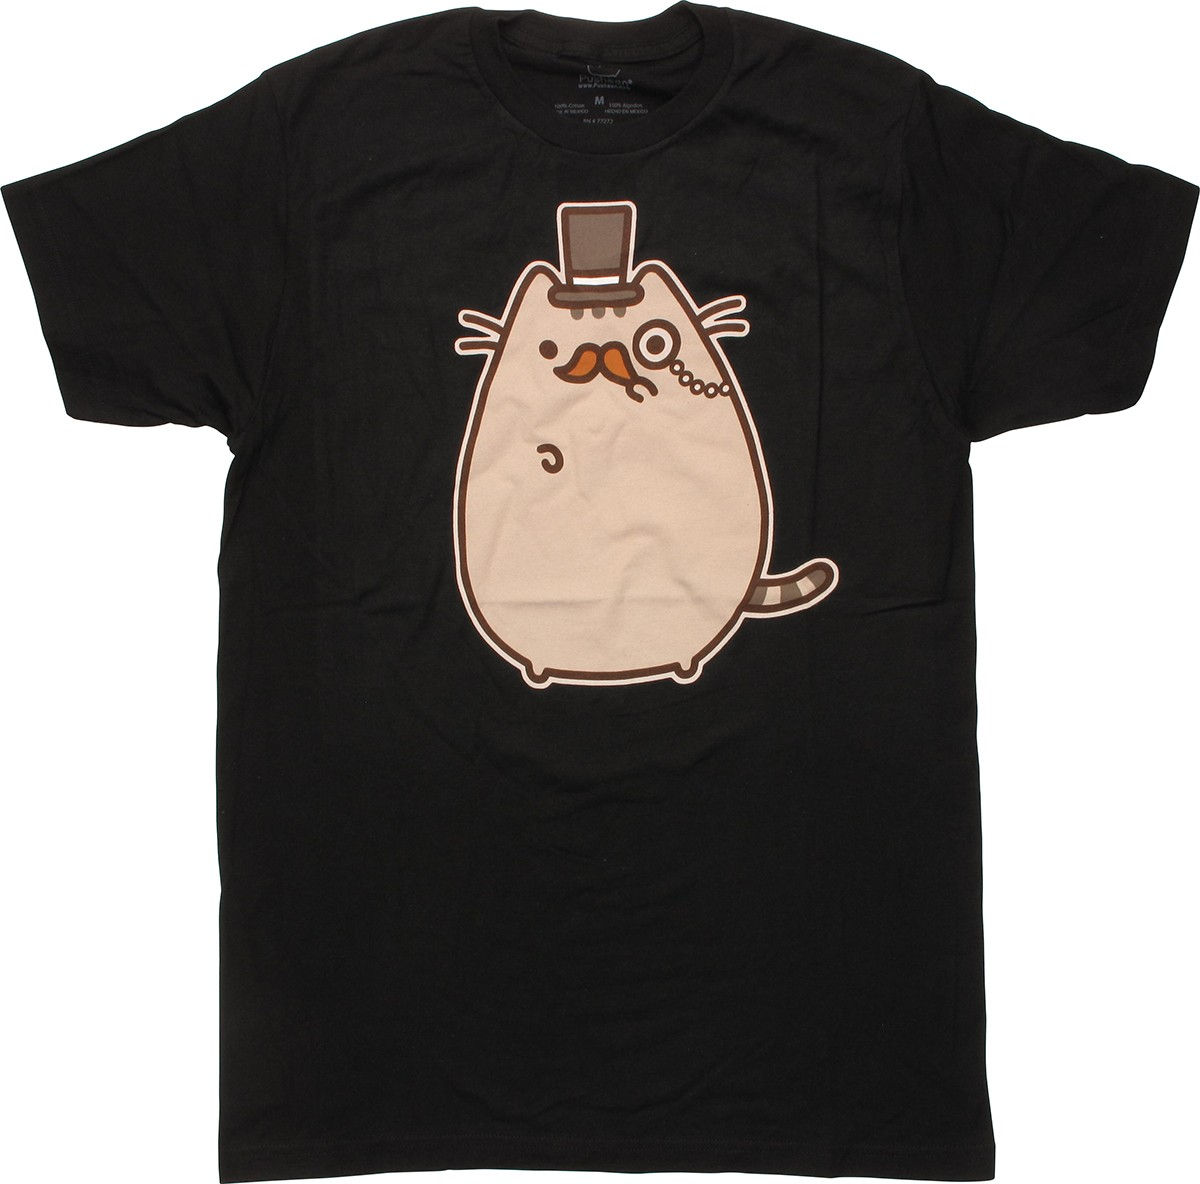 pusheen the cat monsieur t shirt. Black Bedroom Furniture Sets. Home Design Ideas